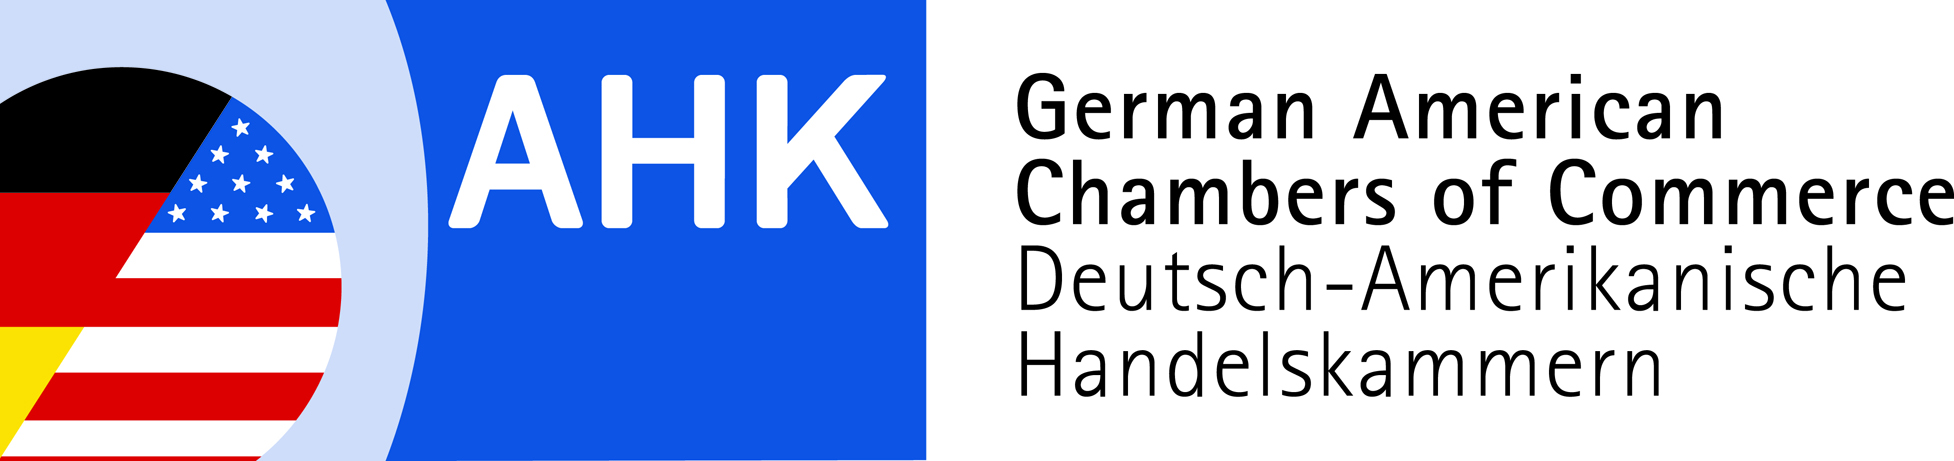 German-American Chamber of Commerce